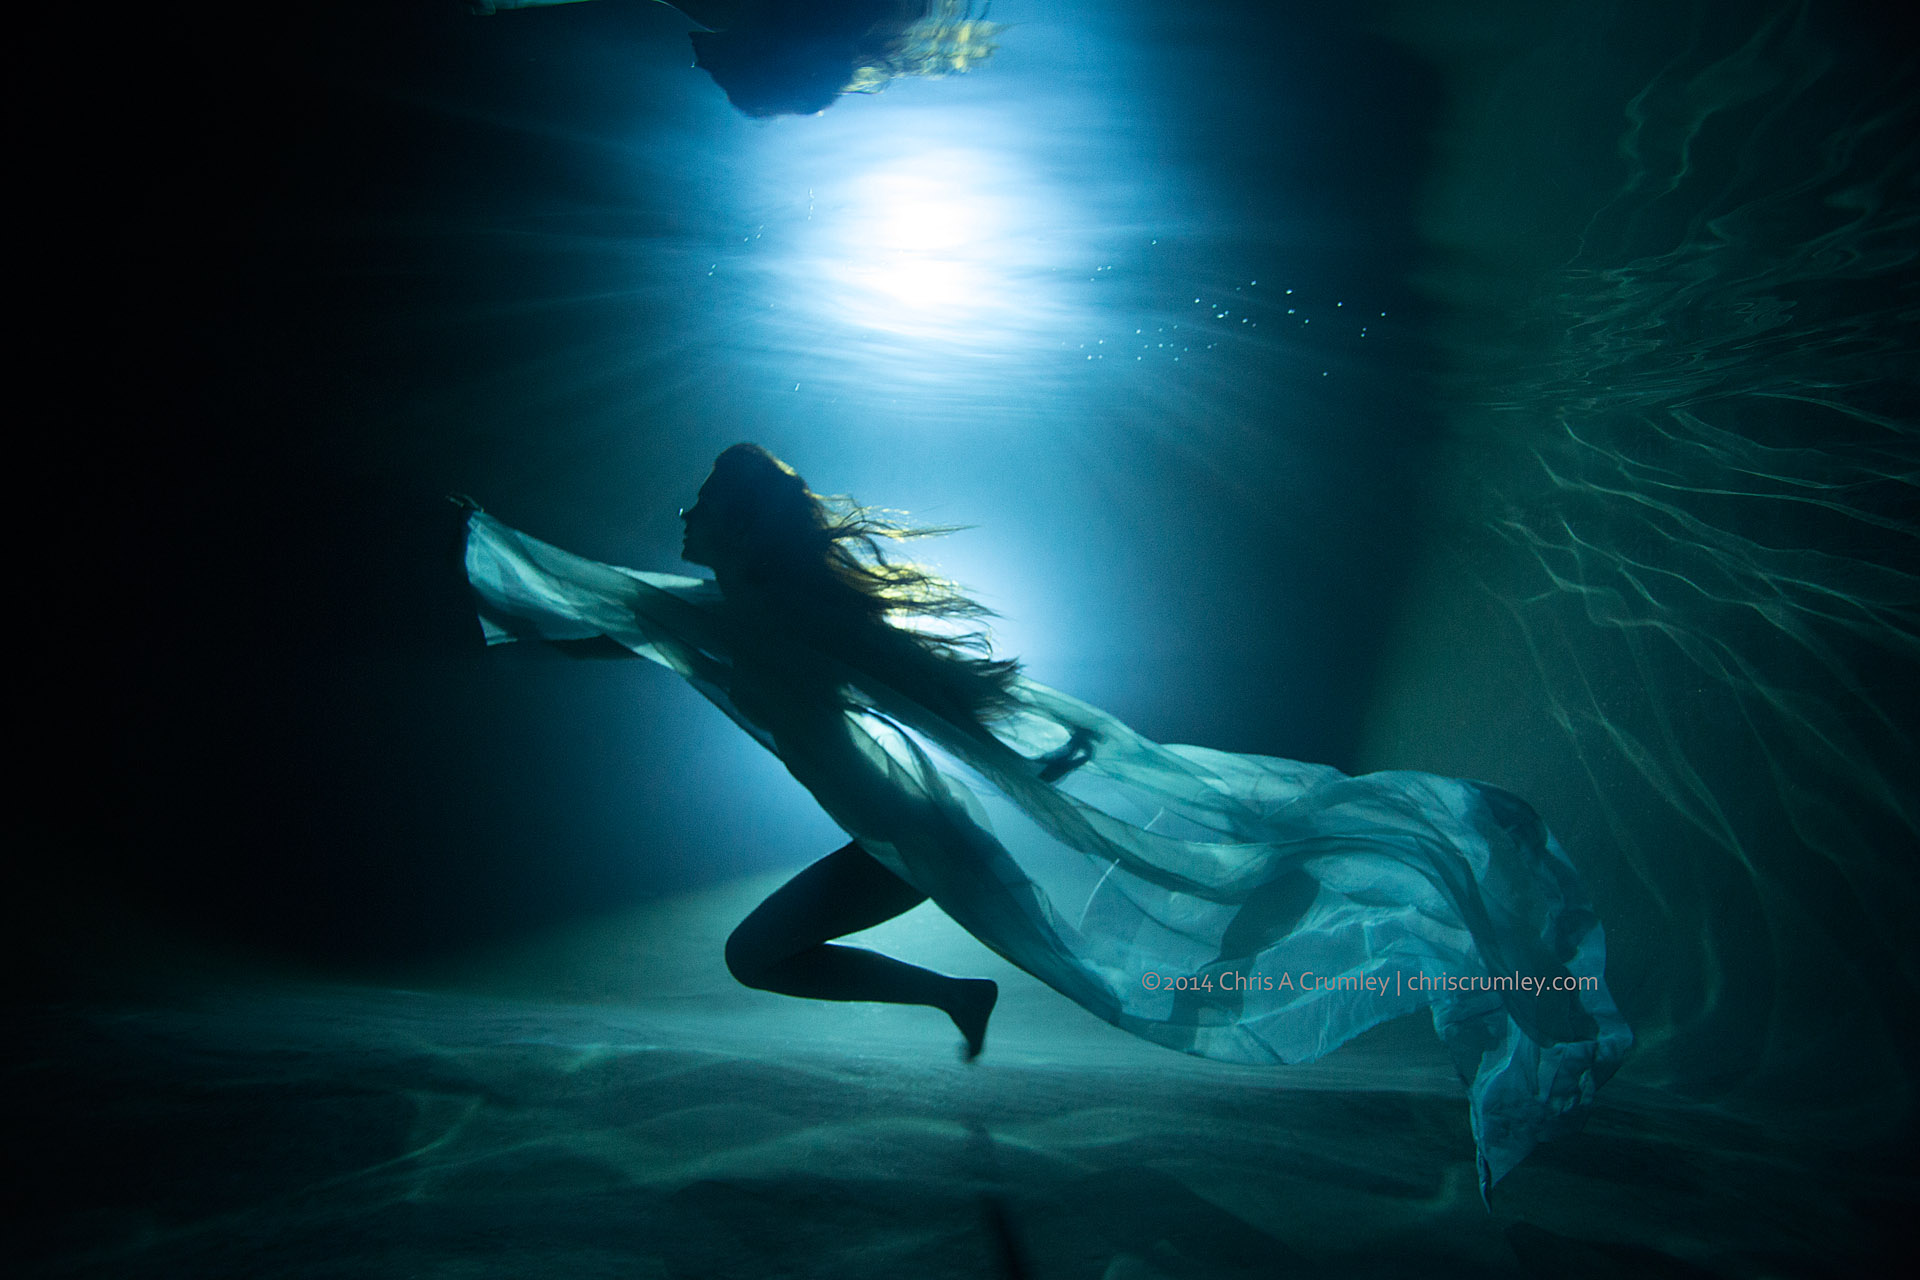 Backlit Model Underwater at Night